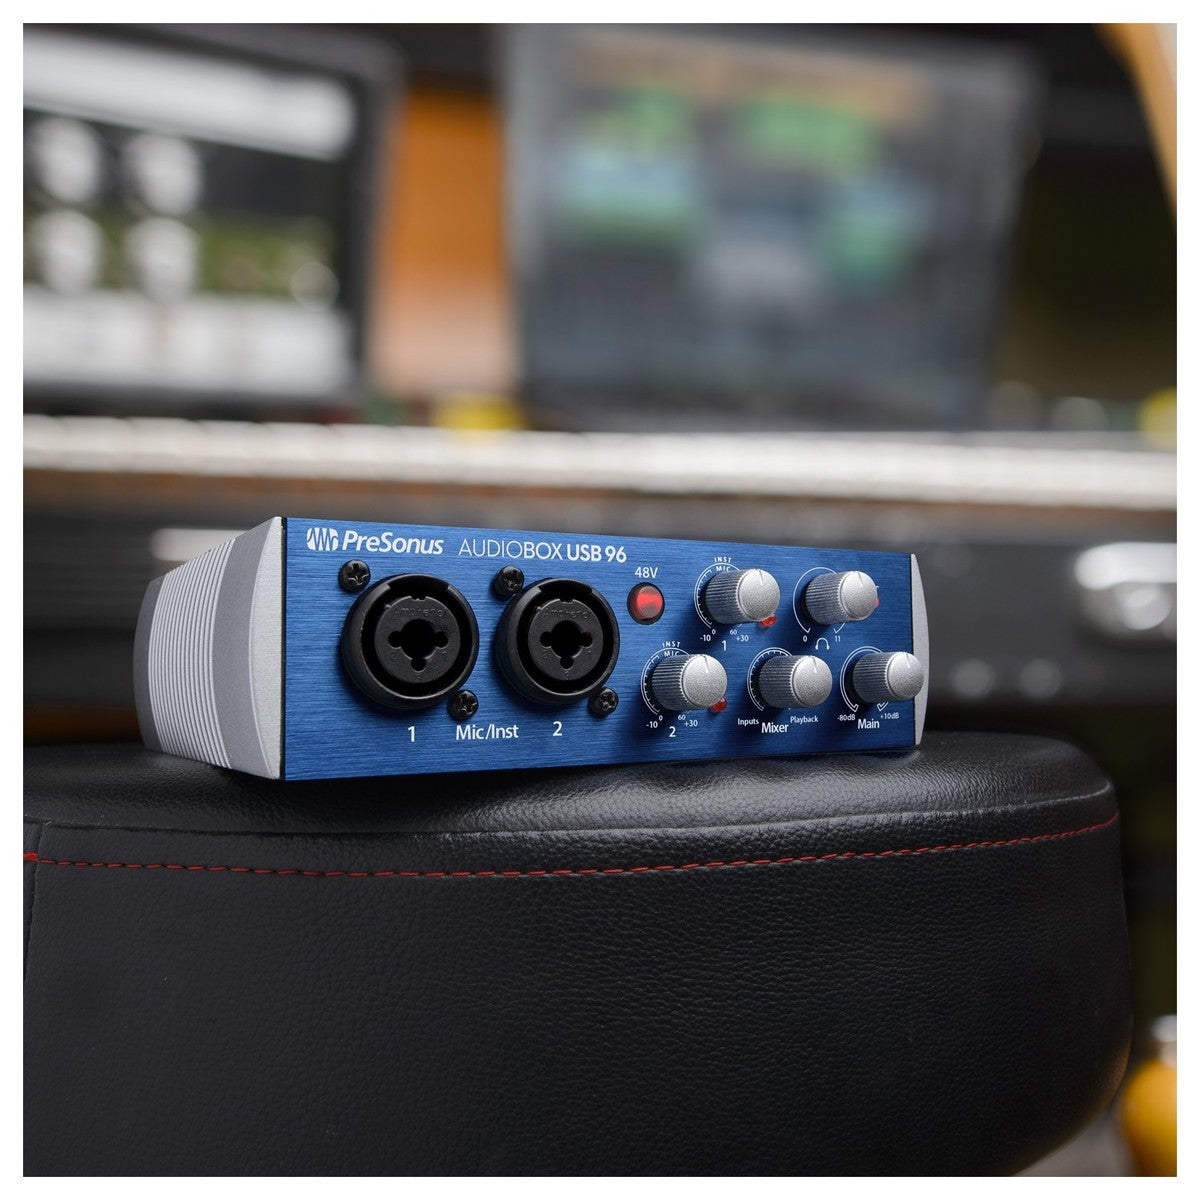 AudioBox USB® 96: 2x2 USB 2.0 Audio Interface